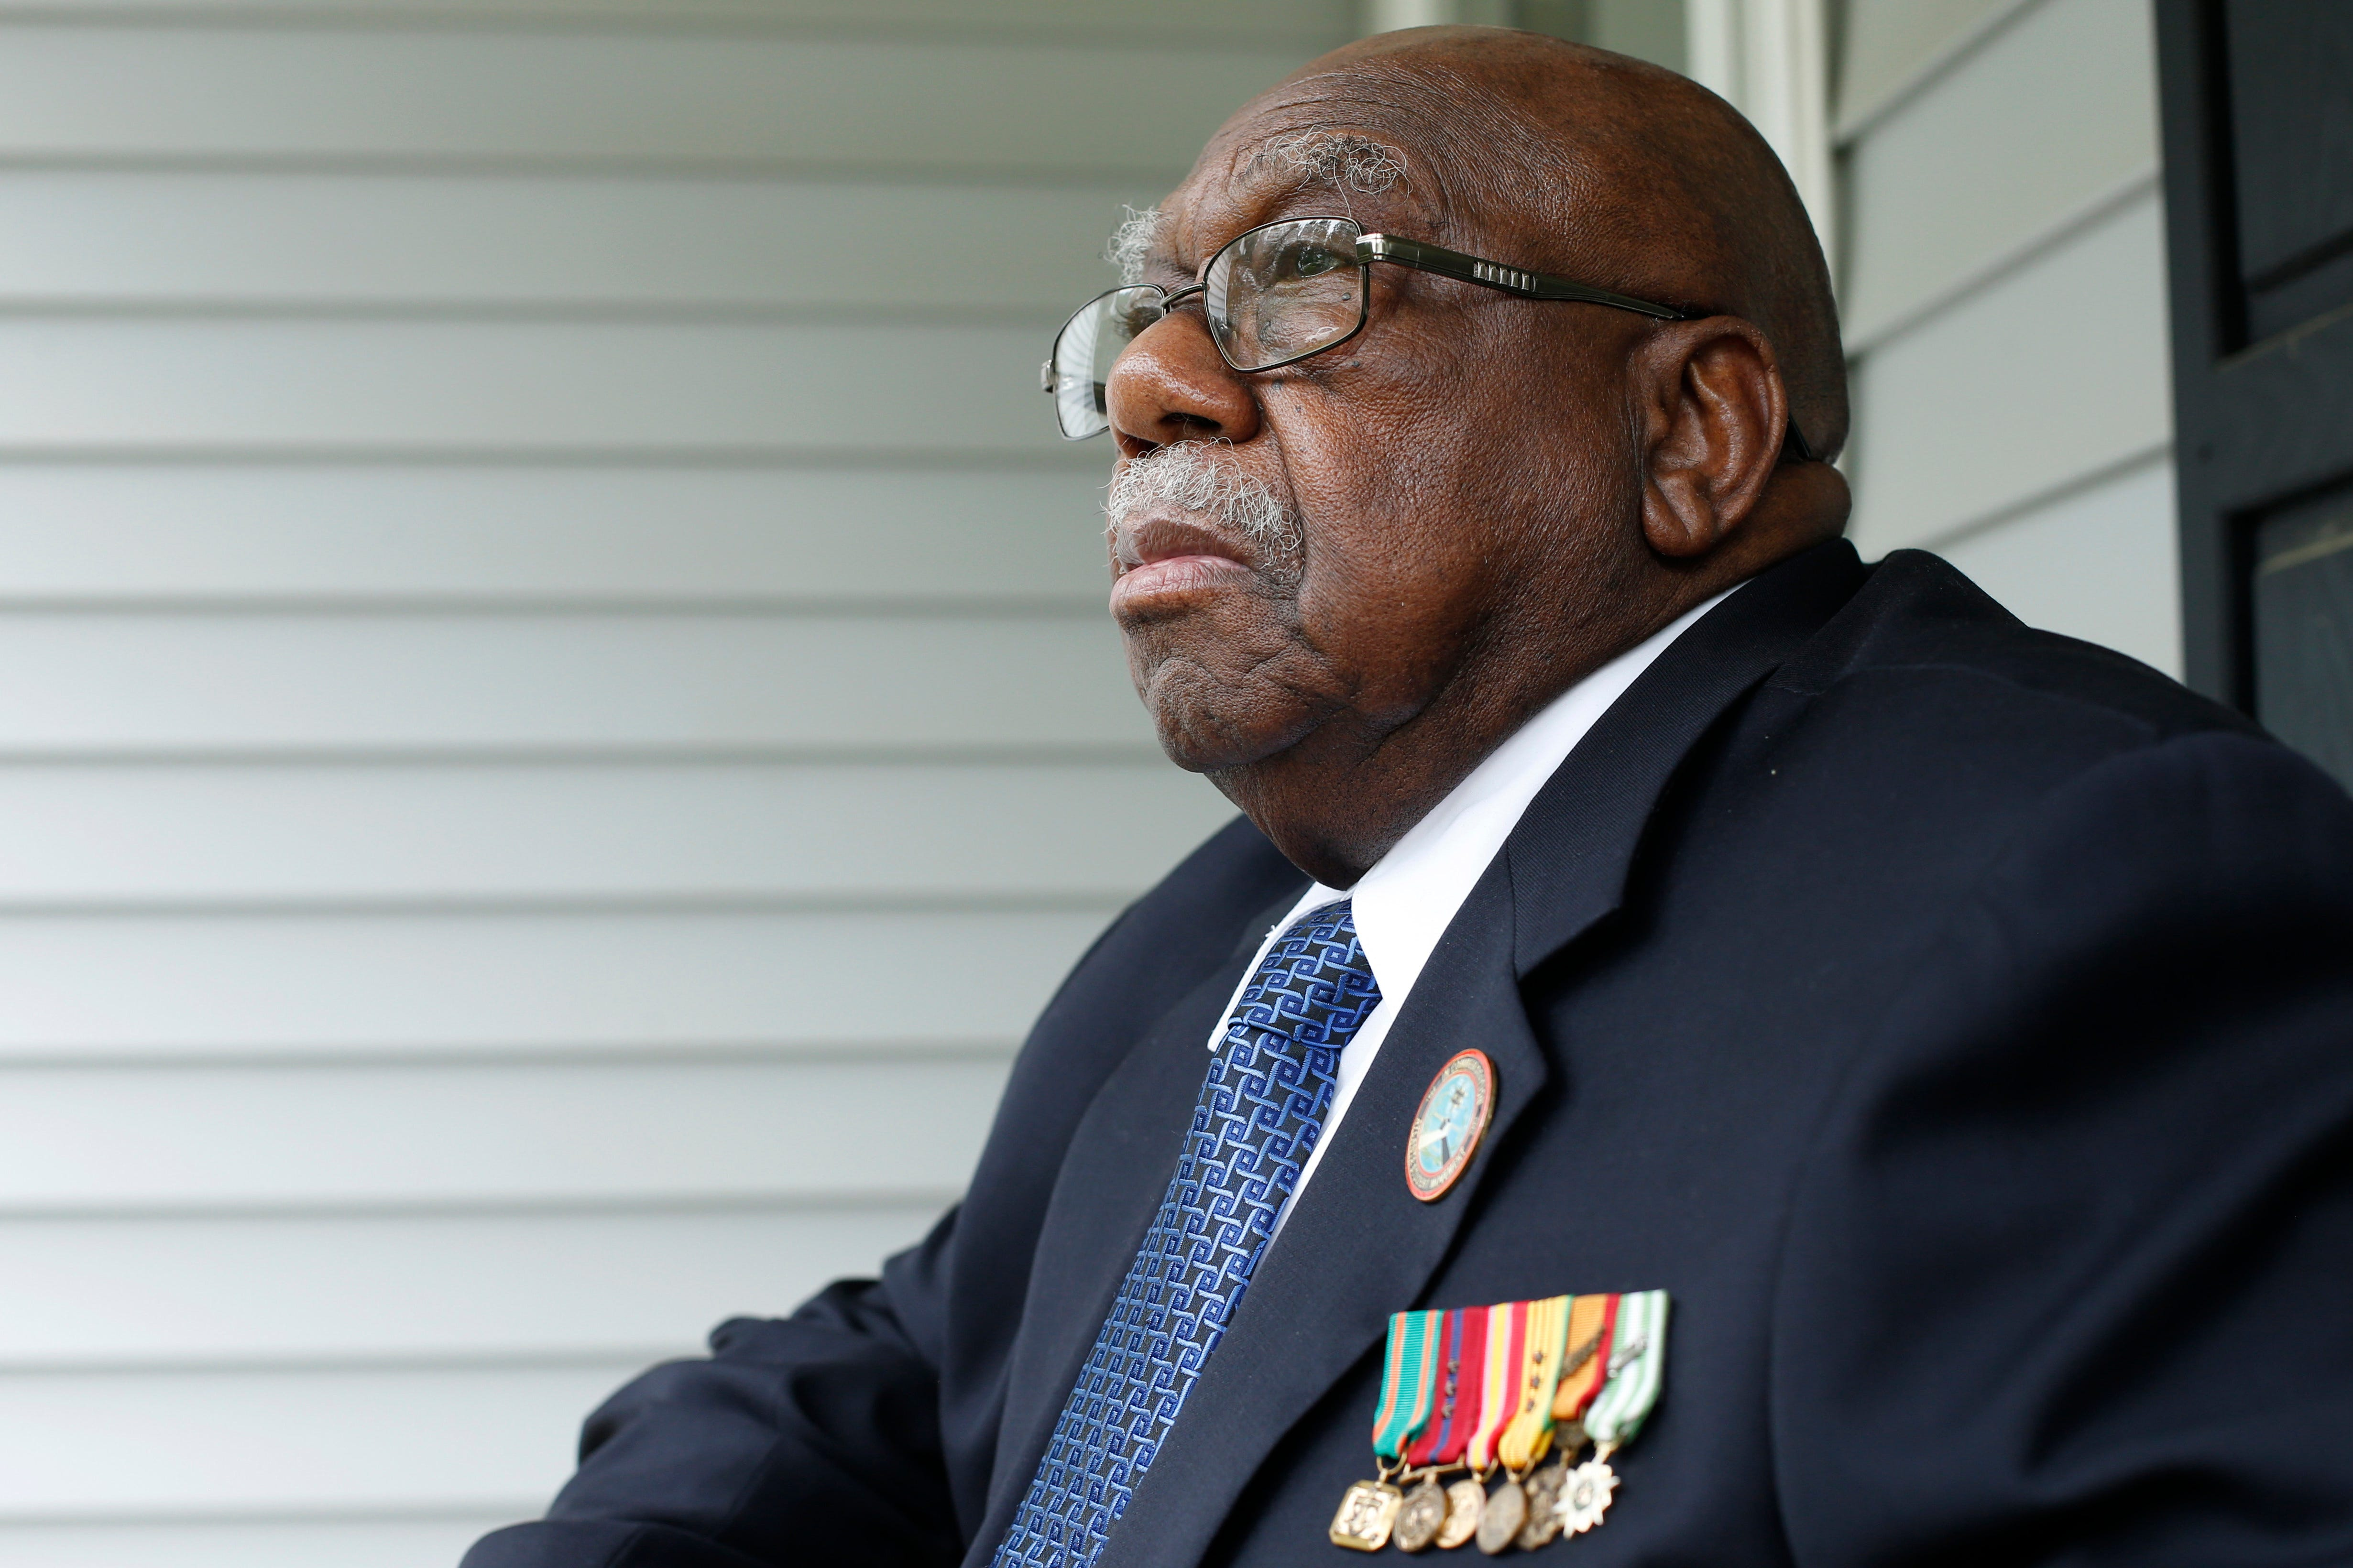 Charles Person, one of the original 13 Freedom Riders, at his home in Atlanta on April 29, 2021.